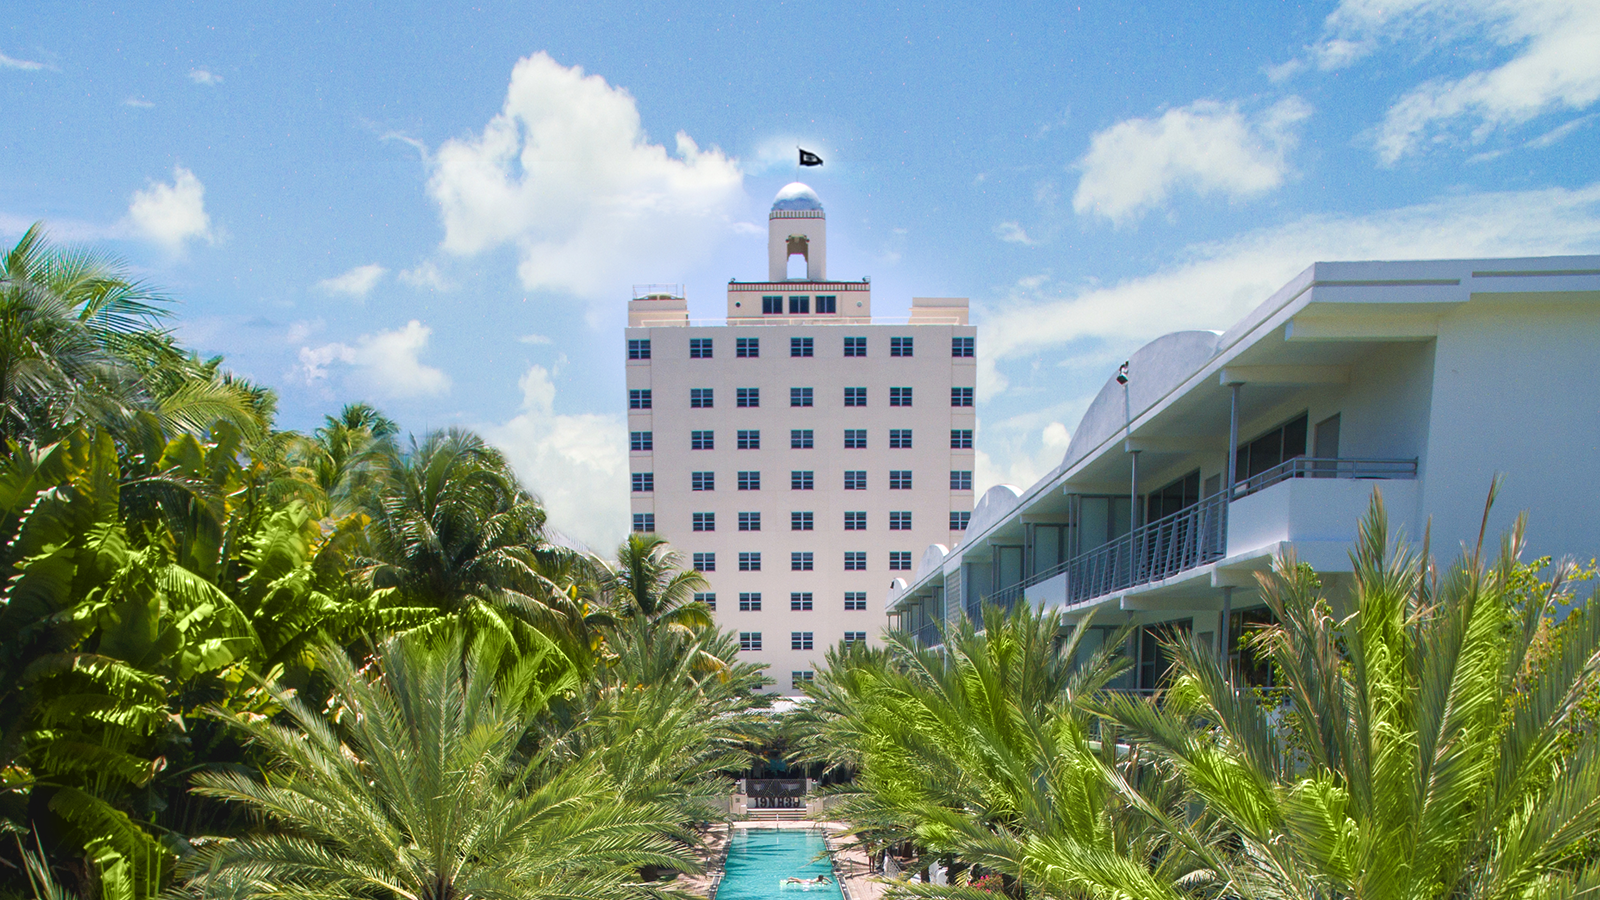 Image of Hotel Exterior The National Hotel, 1939, Member of Historic Hotels of America, in Miami Beach, Florida, Overview